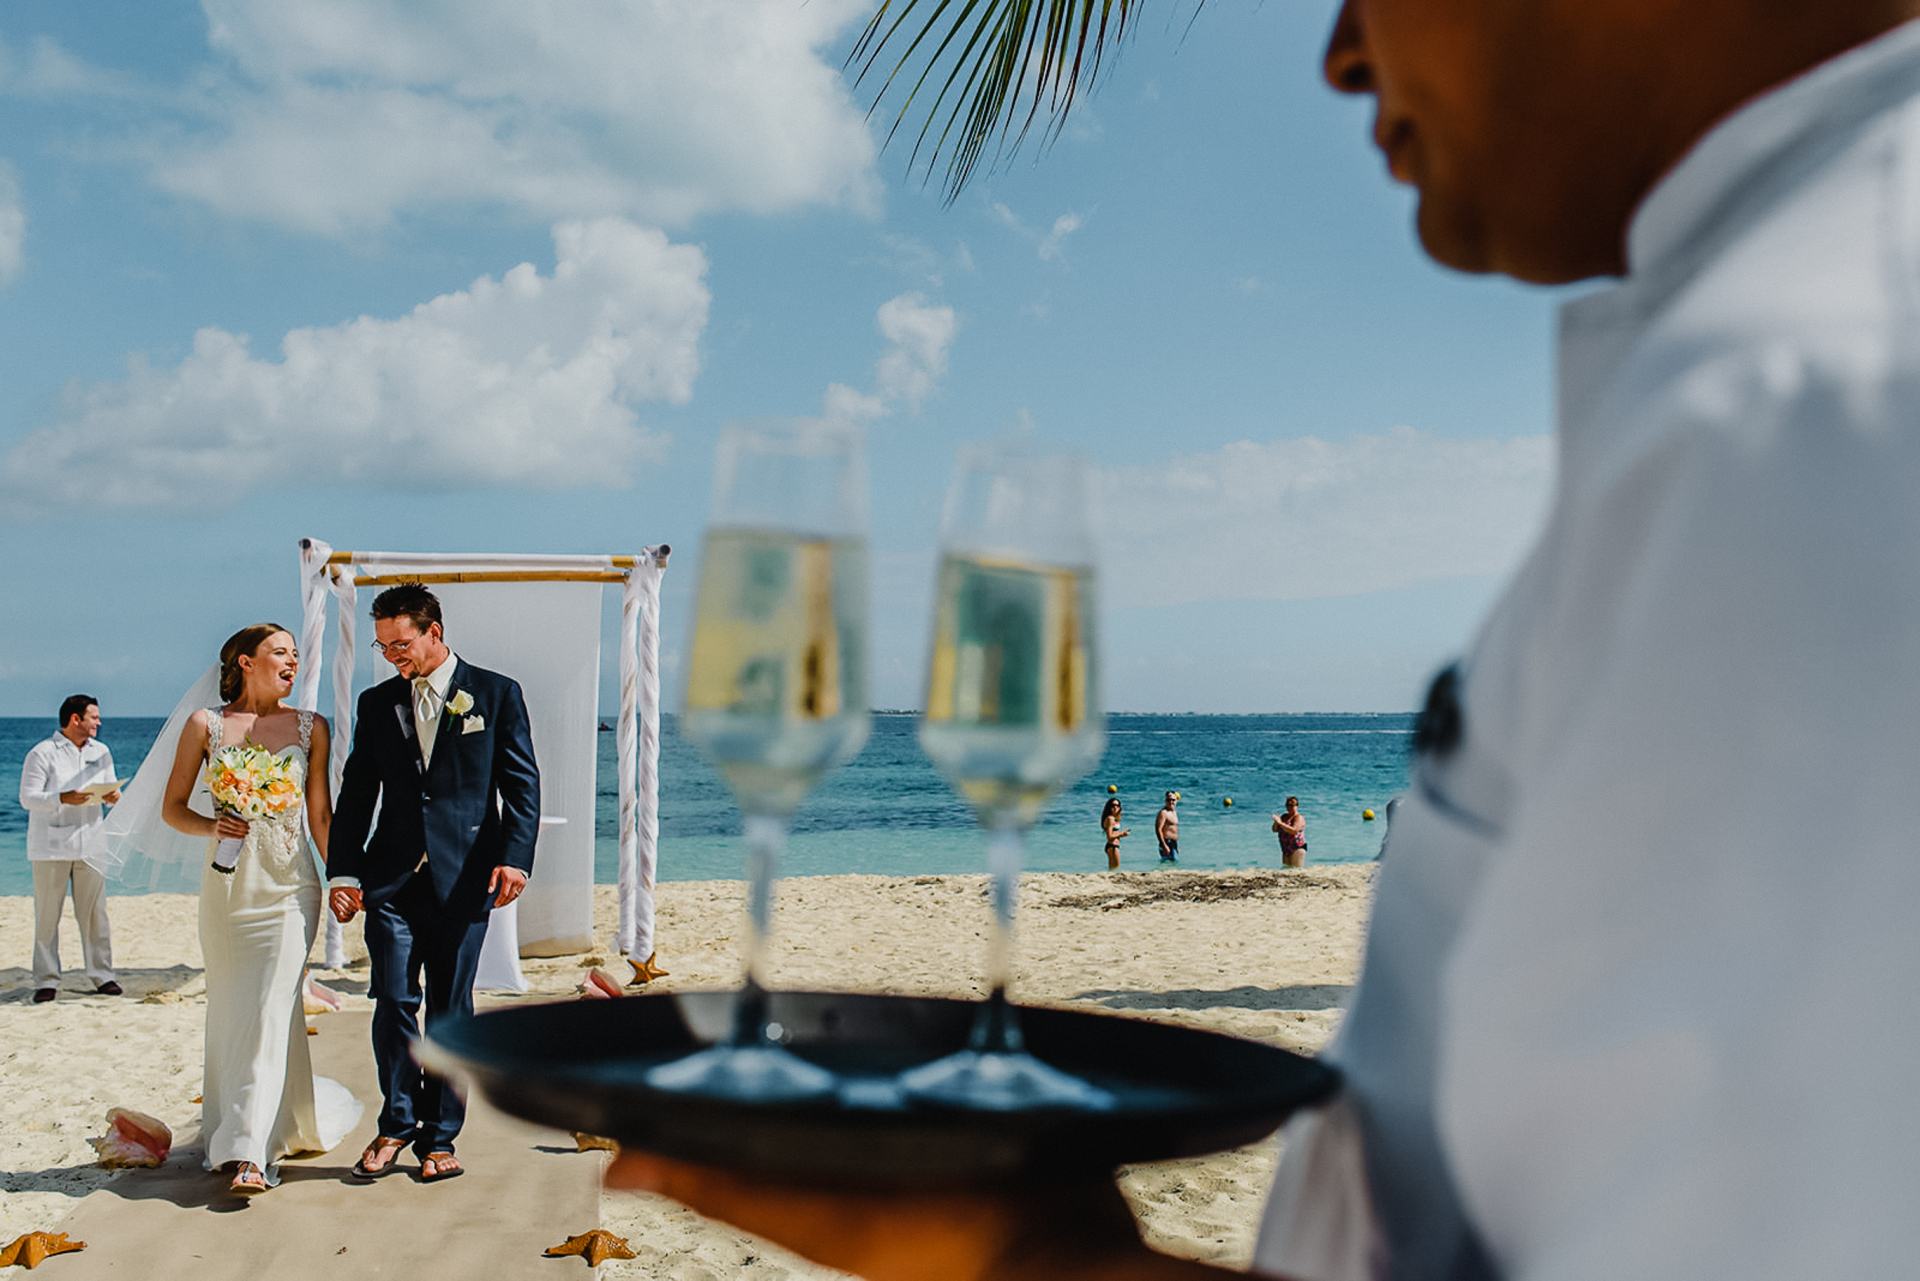 Cancun Beach Elopement Ceremony Image | The couple strolls down the sandy aisle in flip-flops